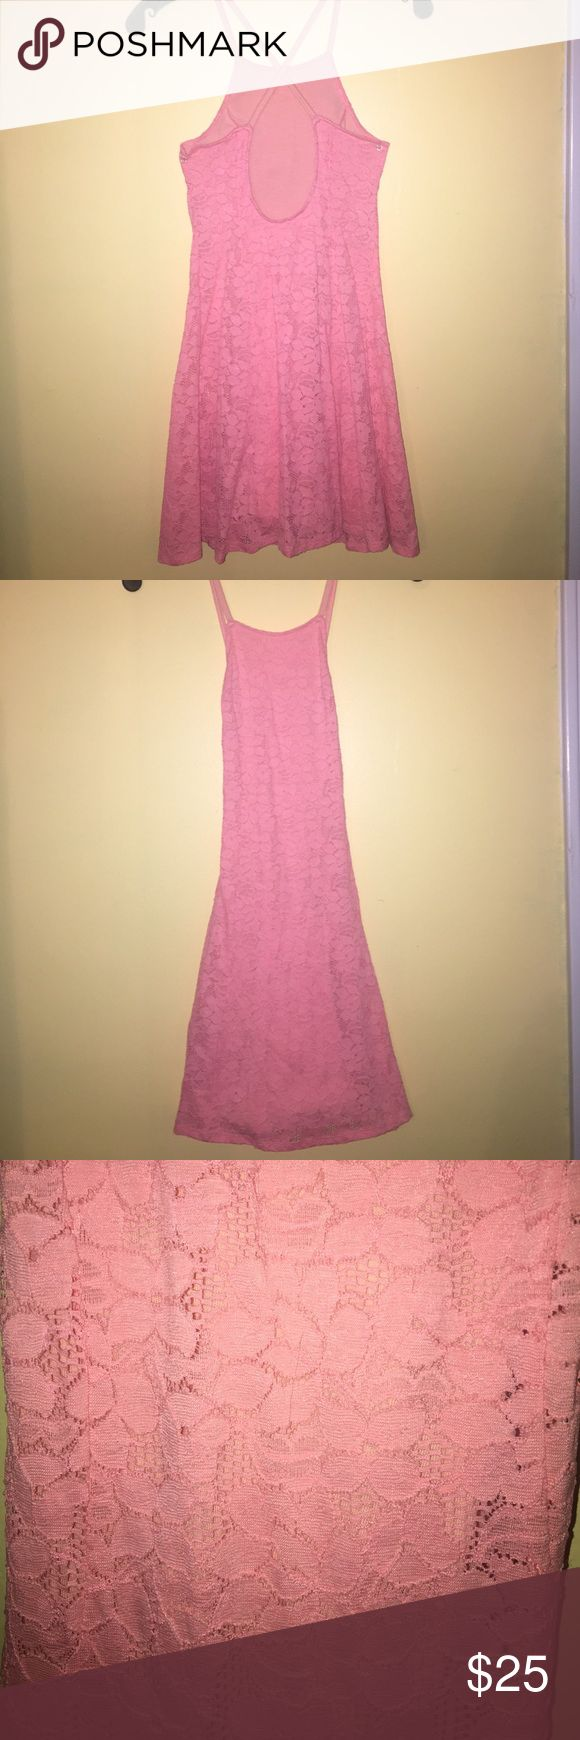 Hollister pink/peach lace dress. Pink/ peach color. High neck, straps cross in the back, fitted but loose at the bottom. Size XS Hollister Dresses Mini